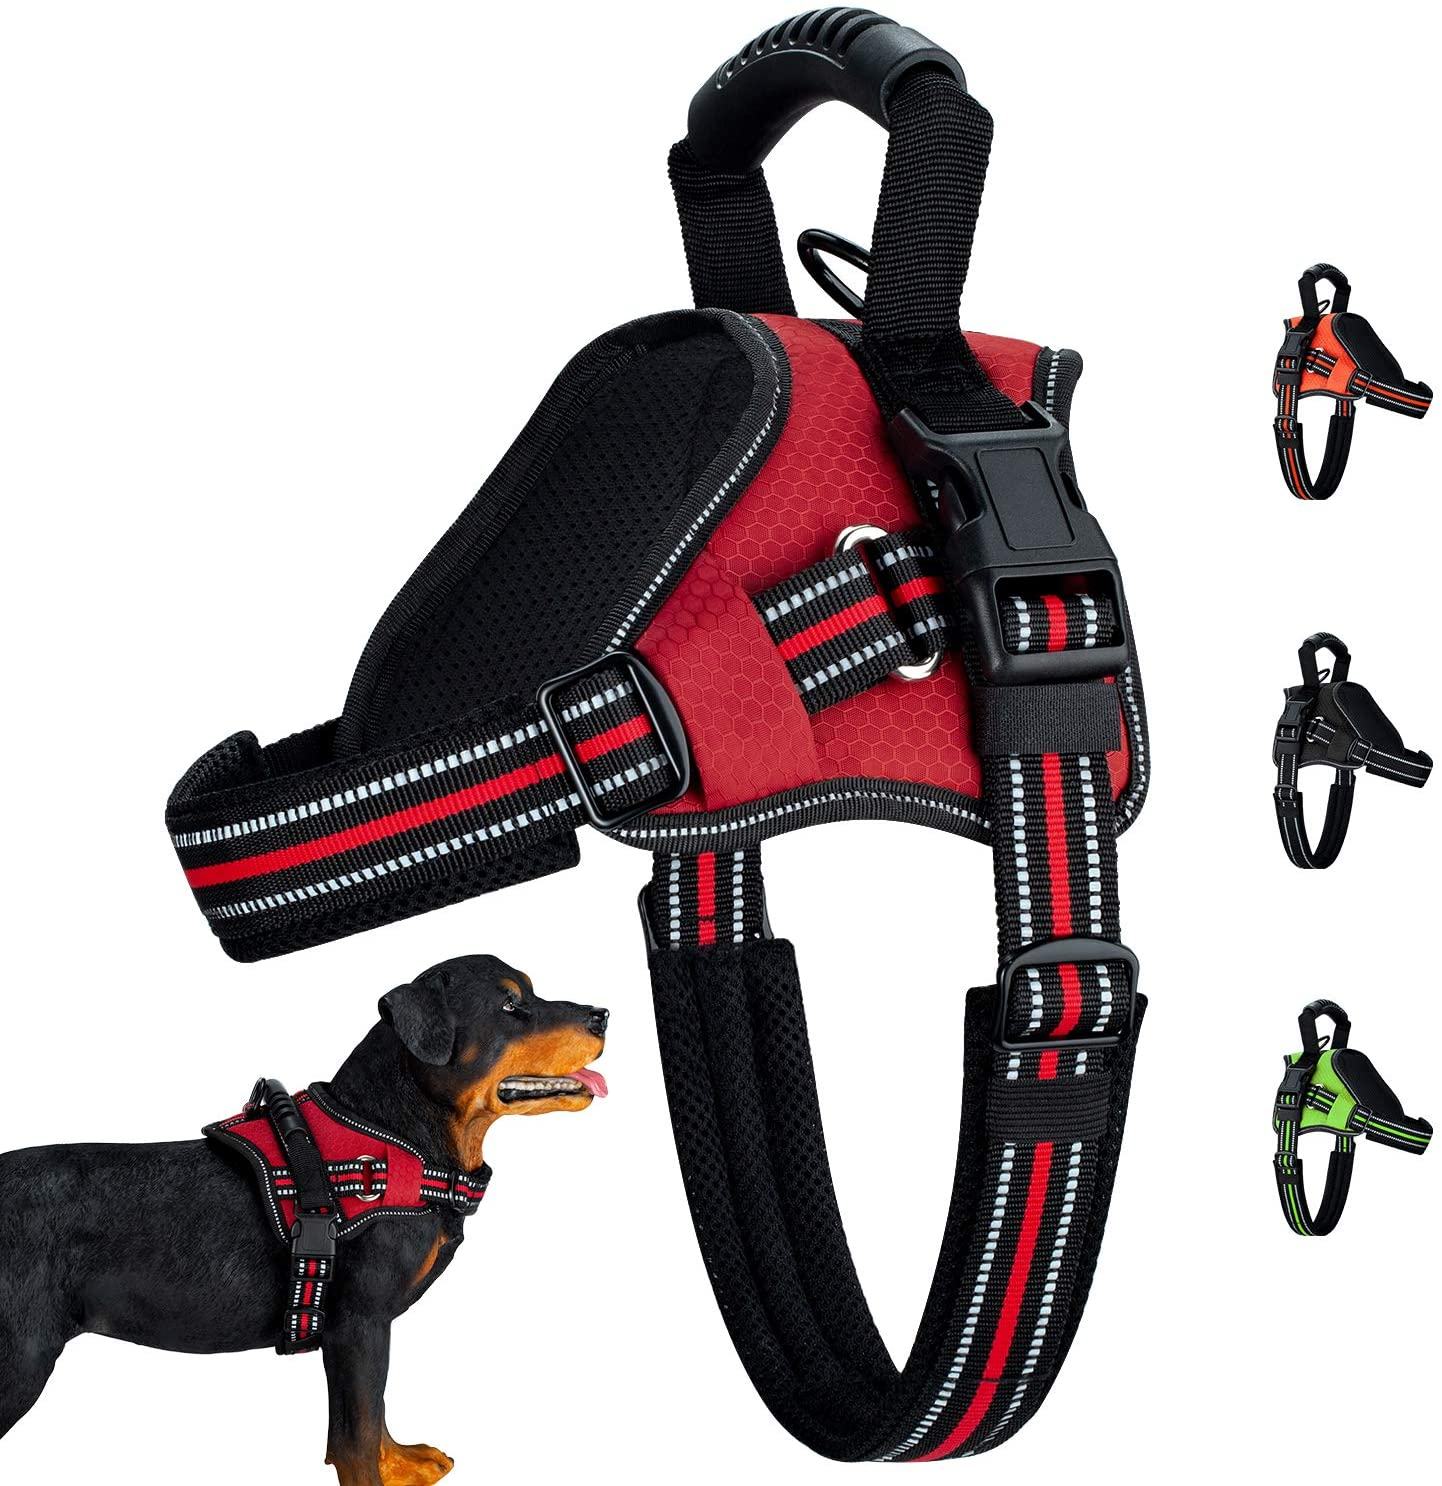 Wealer Dog Harness No-Pull Adjustable,Dog Vest with Training Handle Best Reflective Waterproof Material,Dog Vest Harness All Weather Breathable Mesh for Small Medium Large Dogs